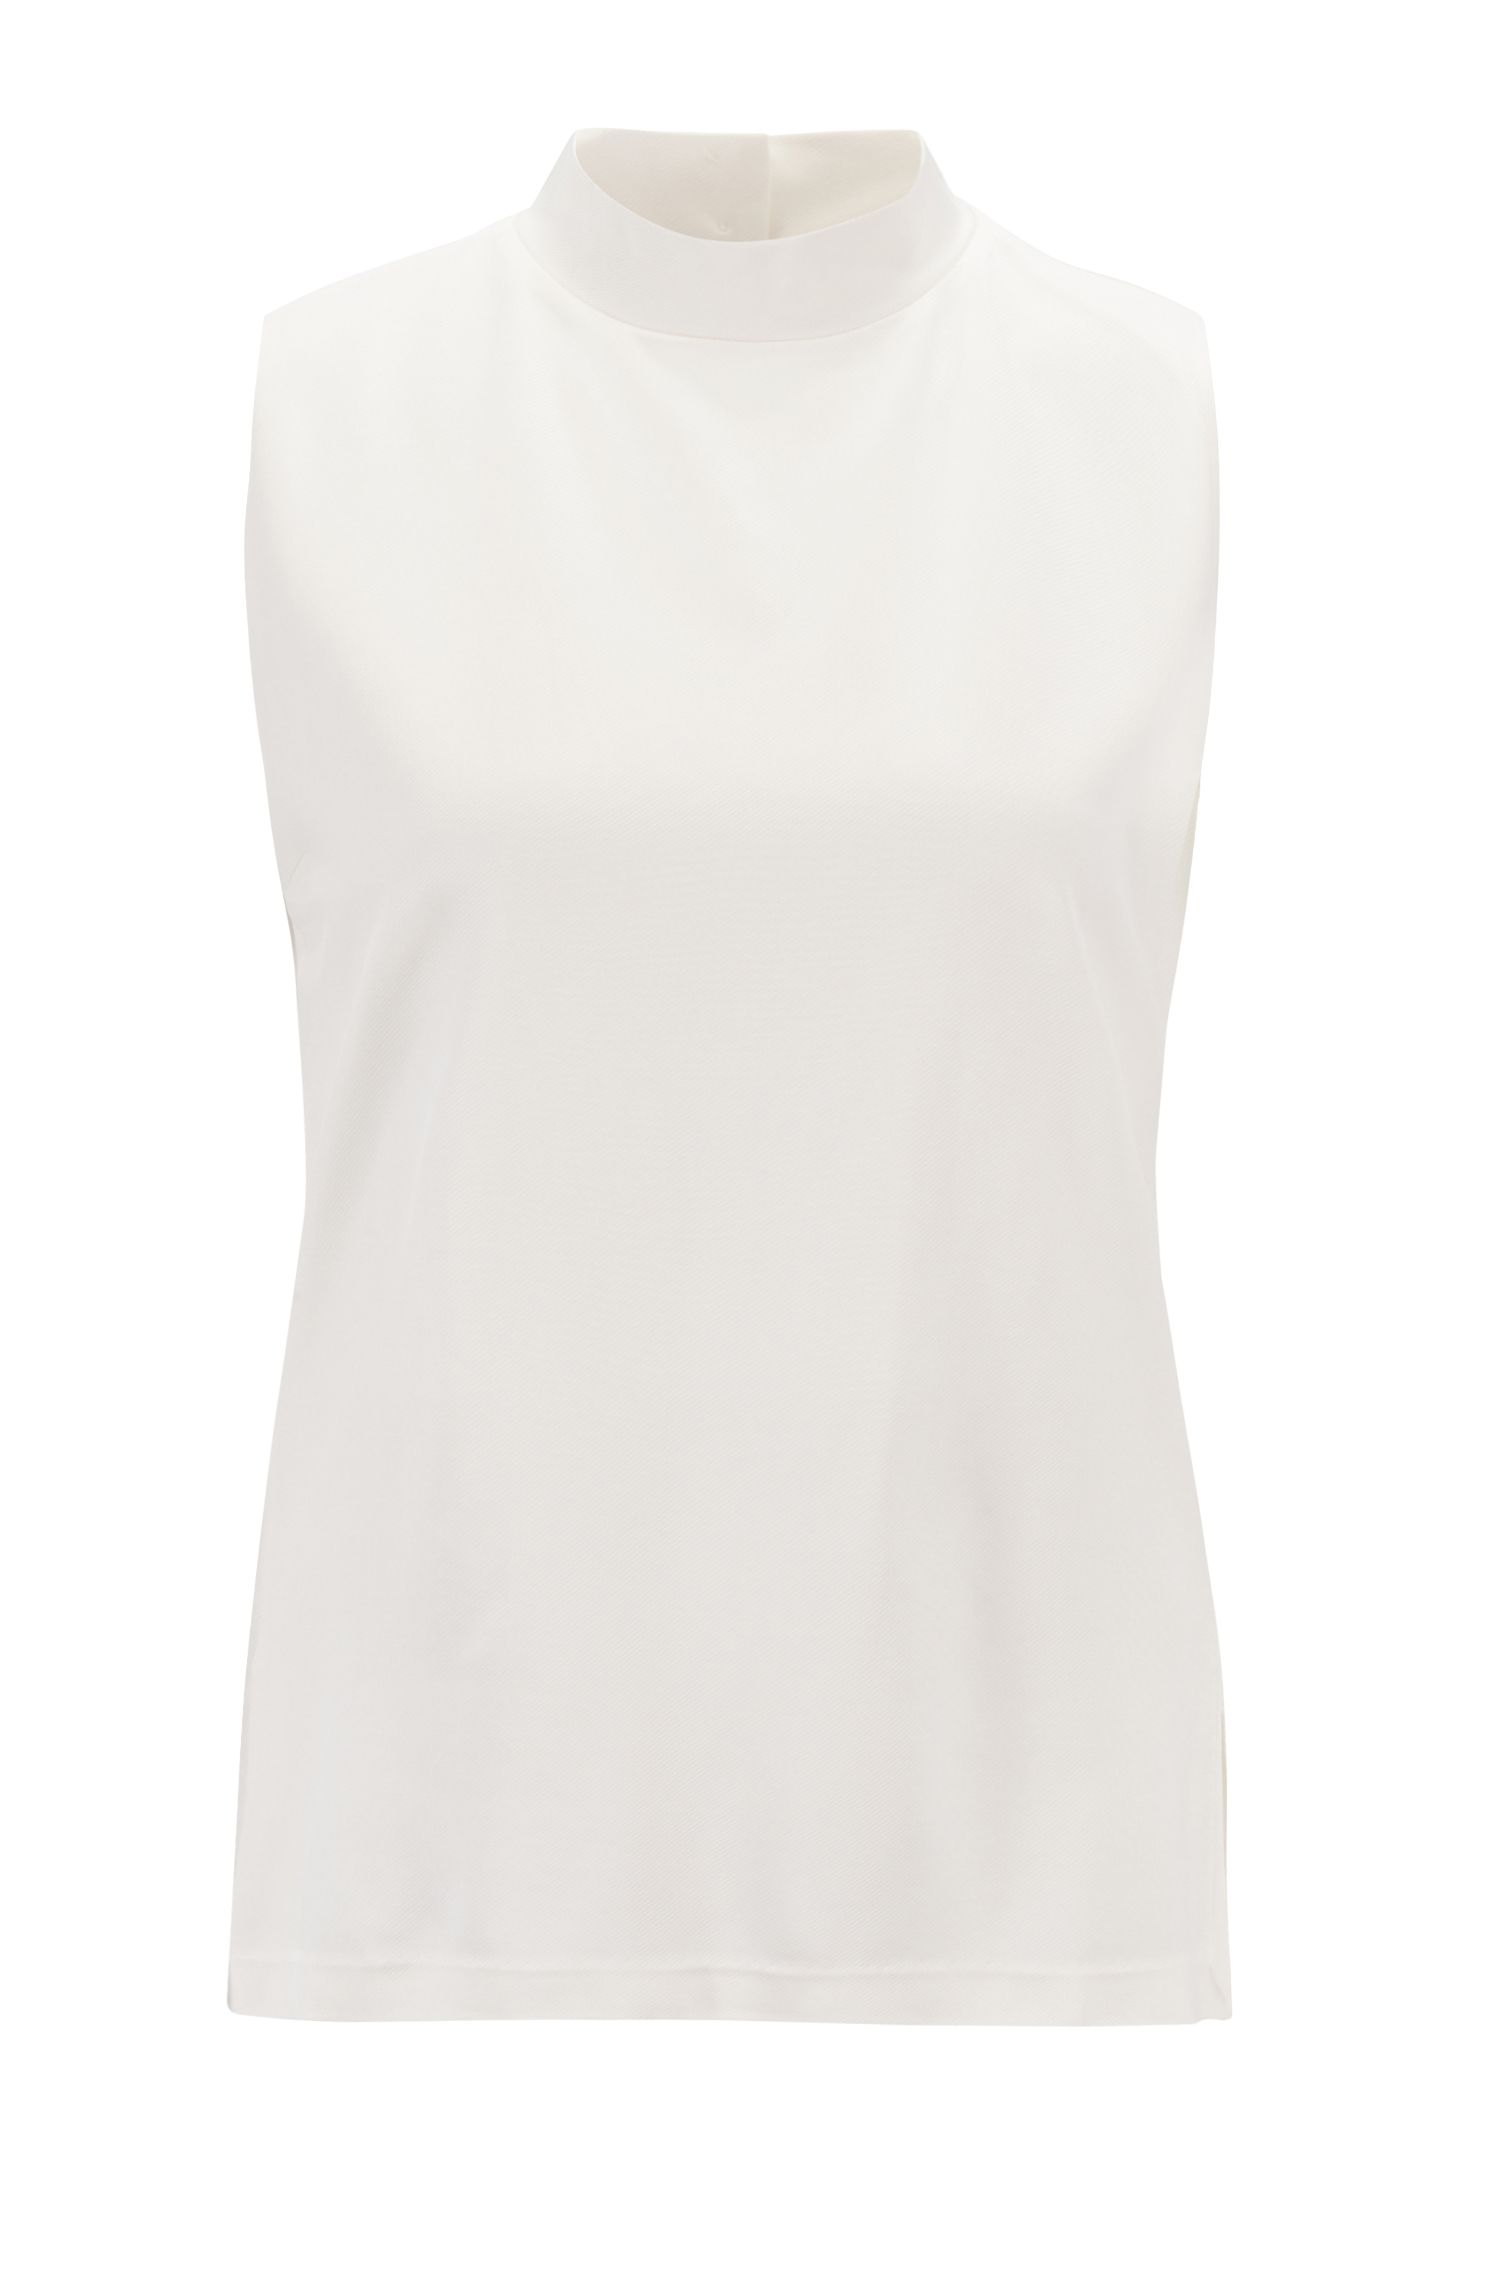 Relaxed-fit sleeveless top in twill jersey, Natural